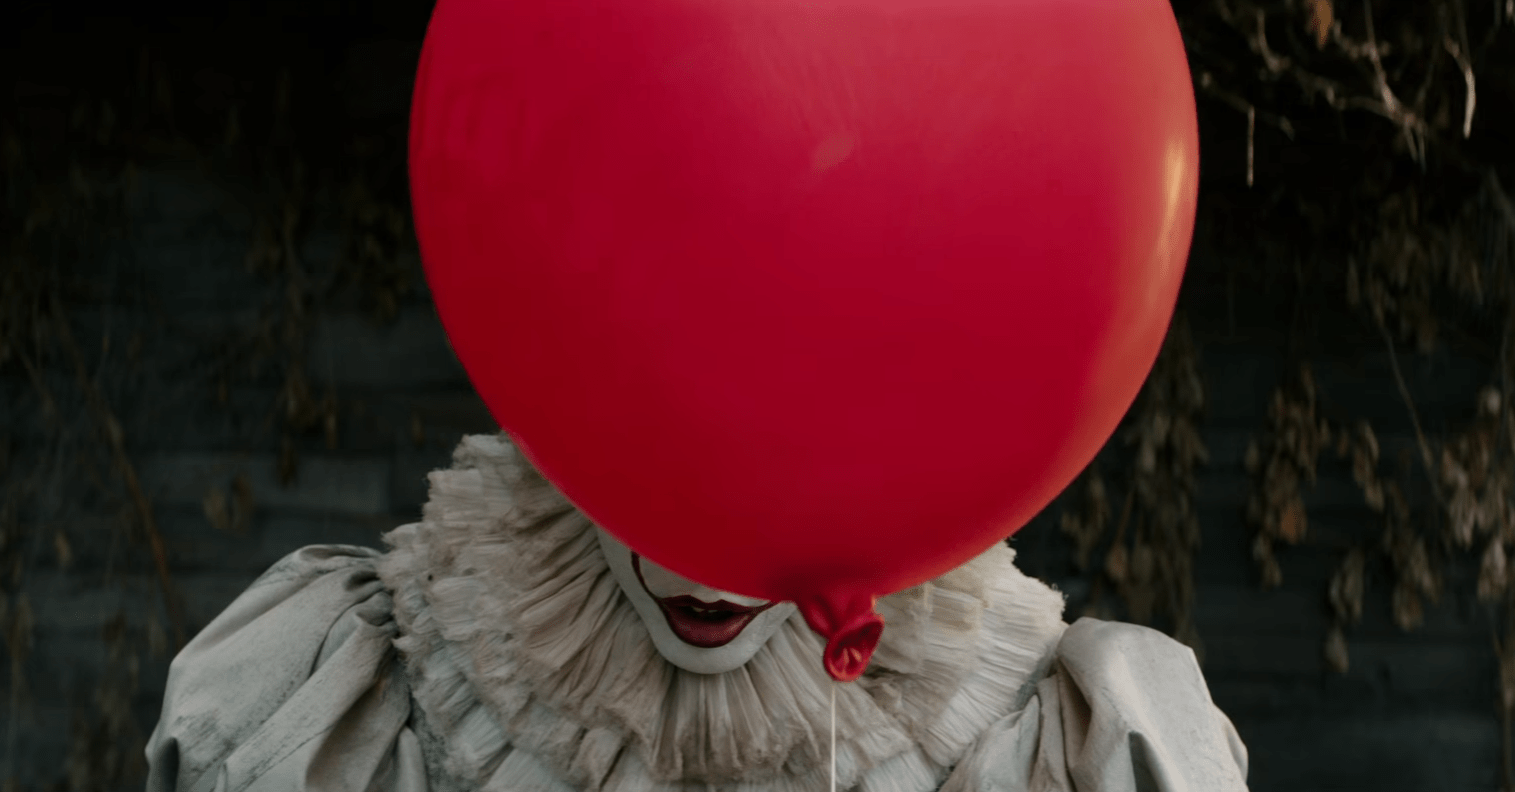 It - A Coisa: Novo poster exclusivo da Comic-Con é revelado!